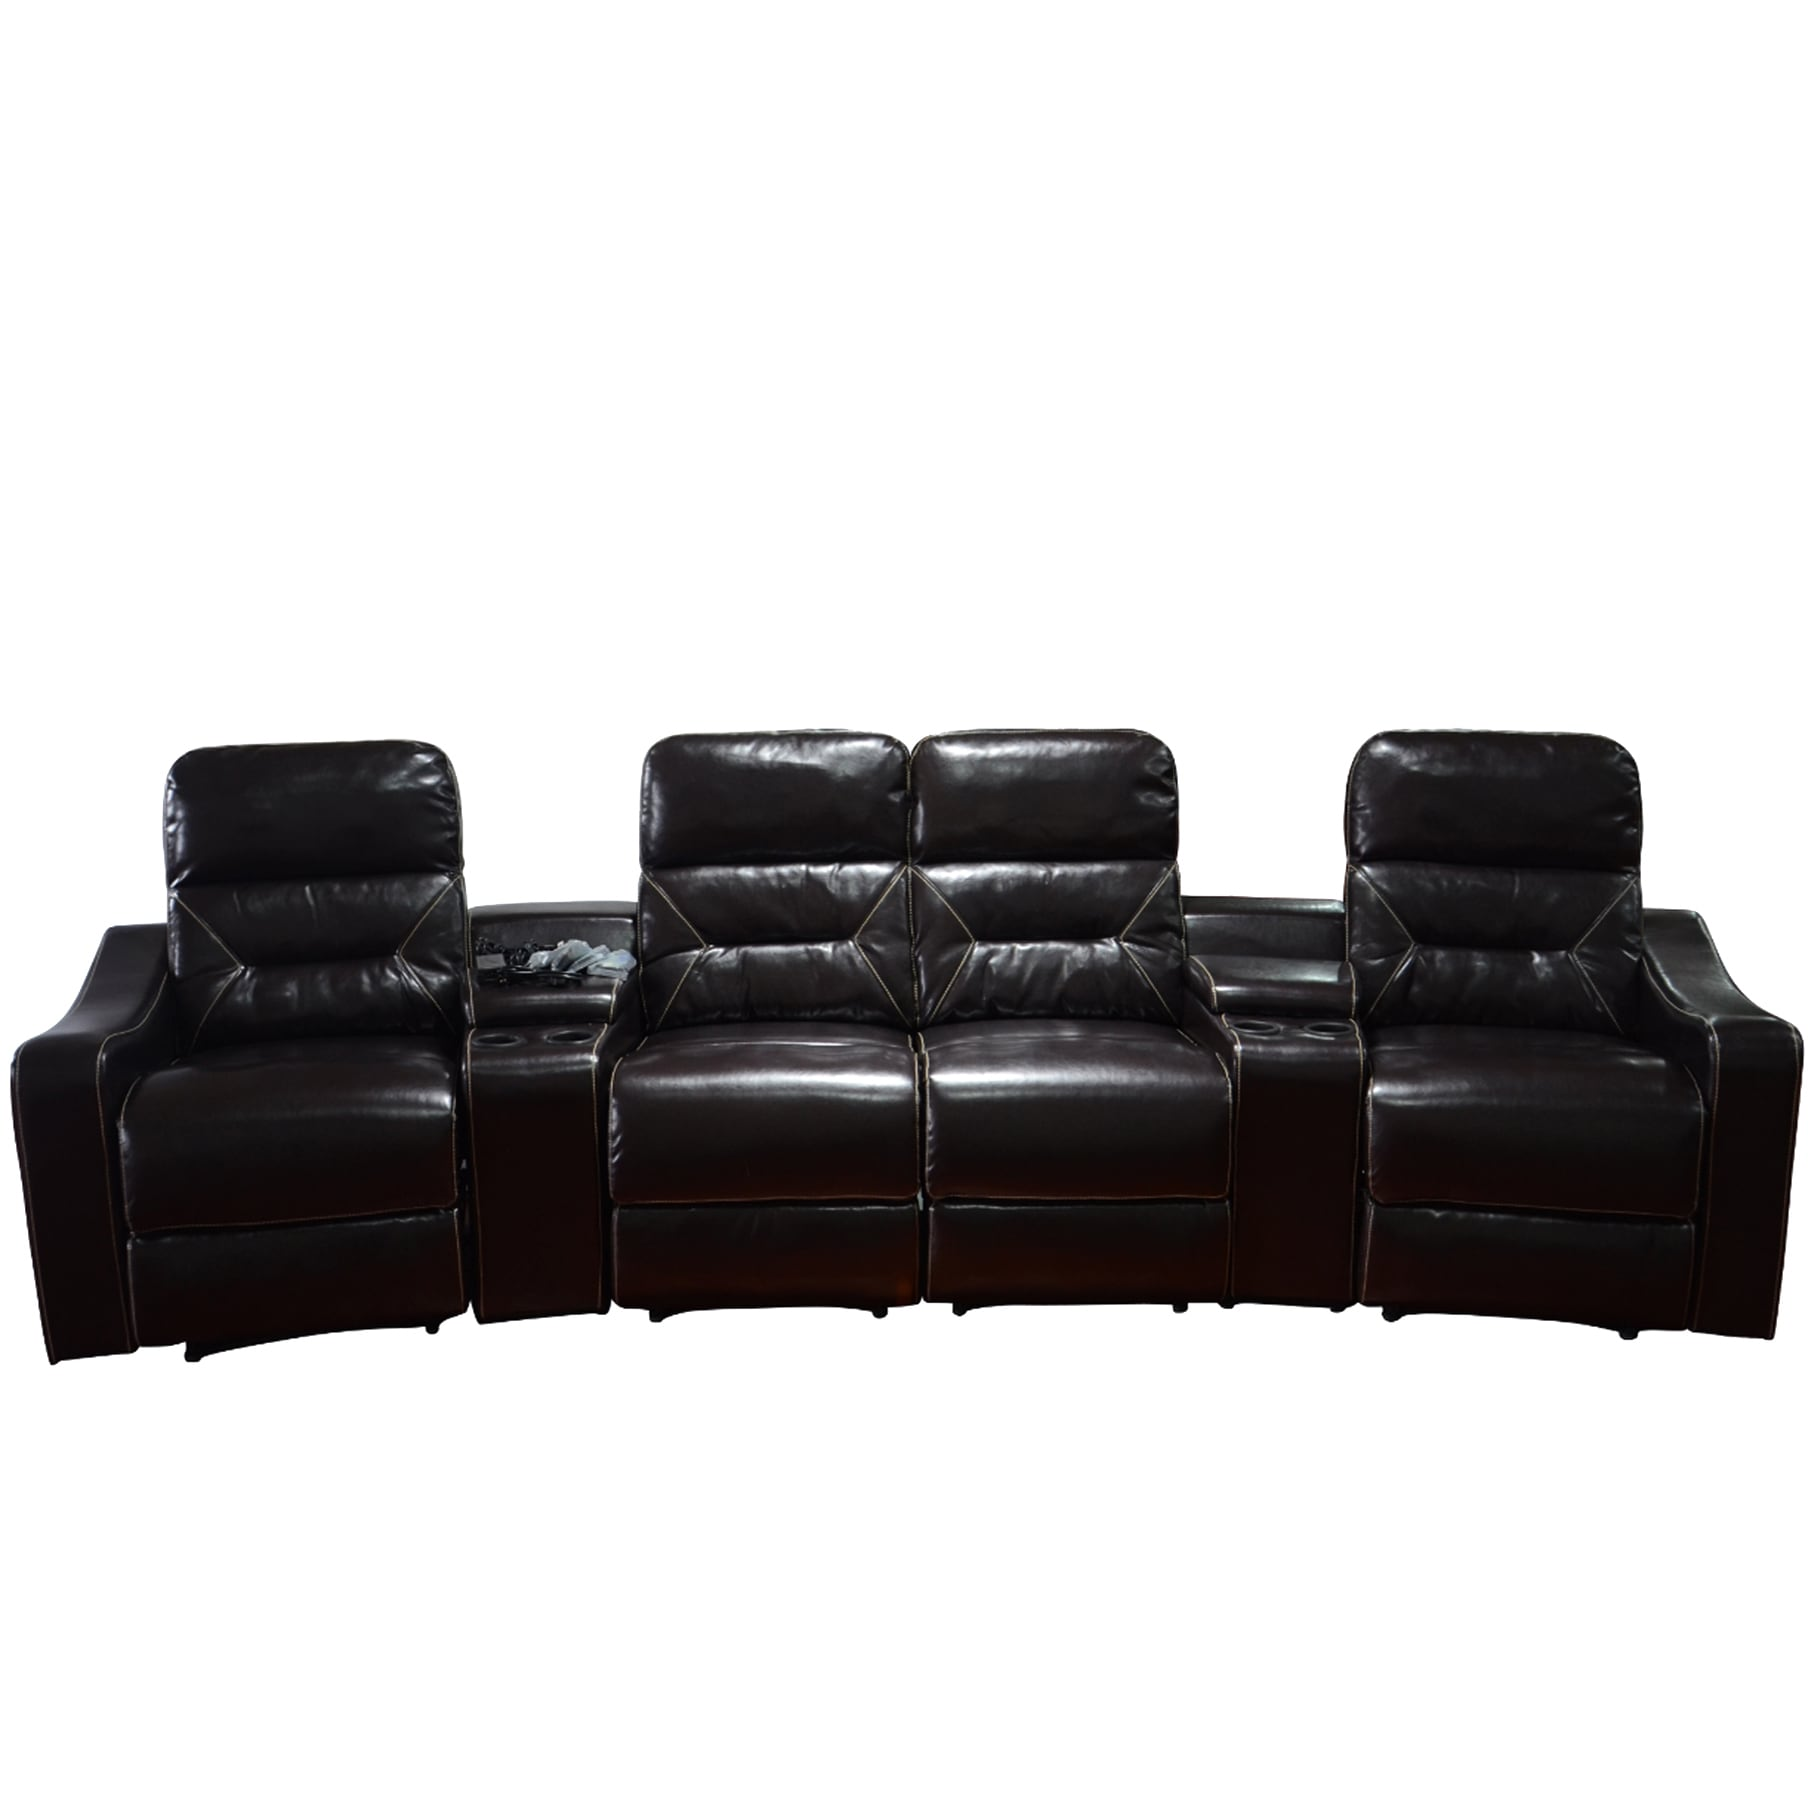 MCombo Faux Leather 4-Seat Home Theater Recliner Sofa (So...